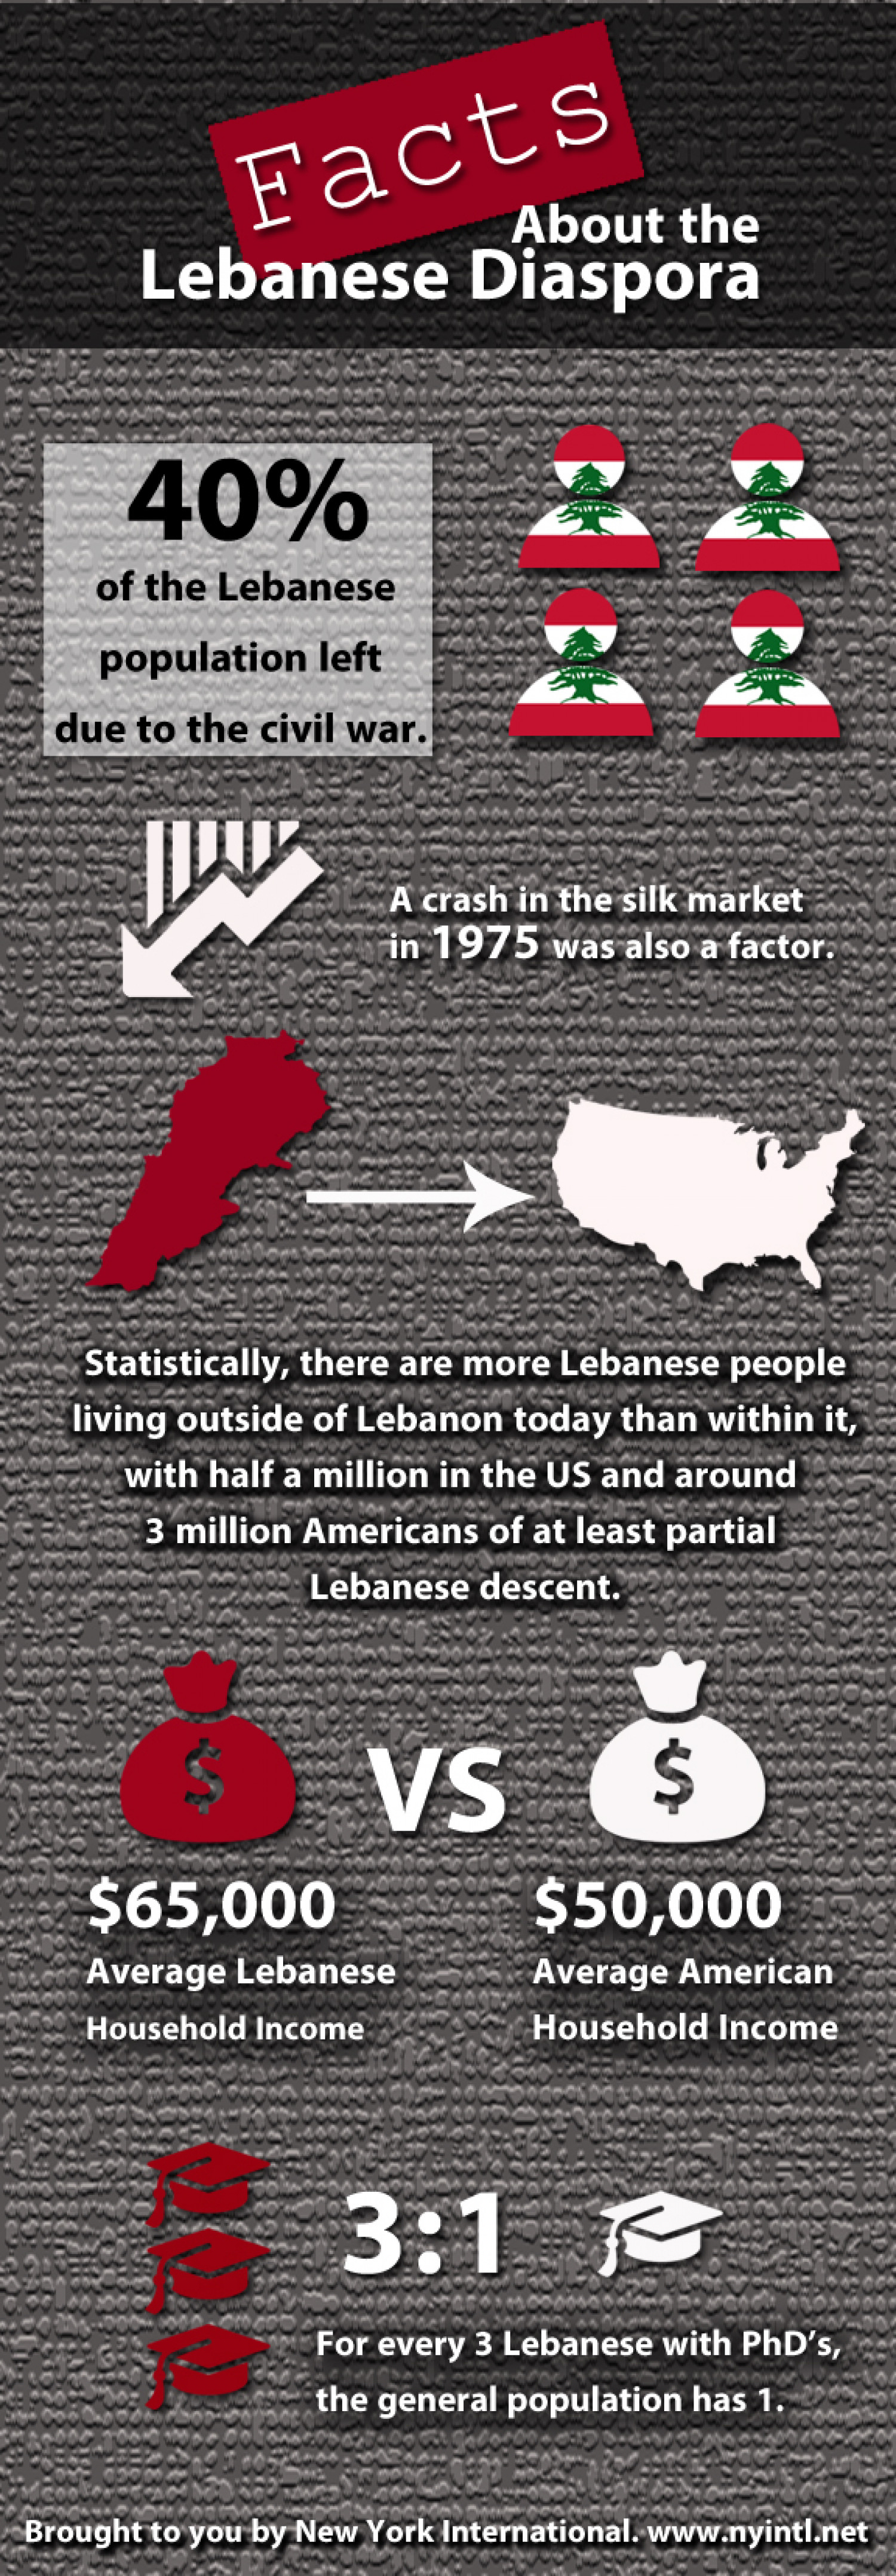 Facts About the Lebanese Diaspora Infographic